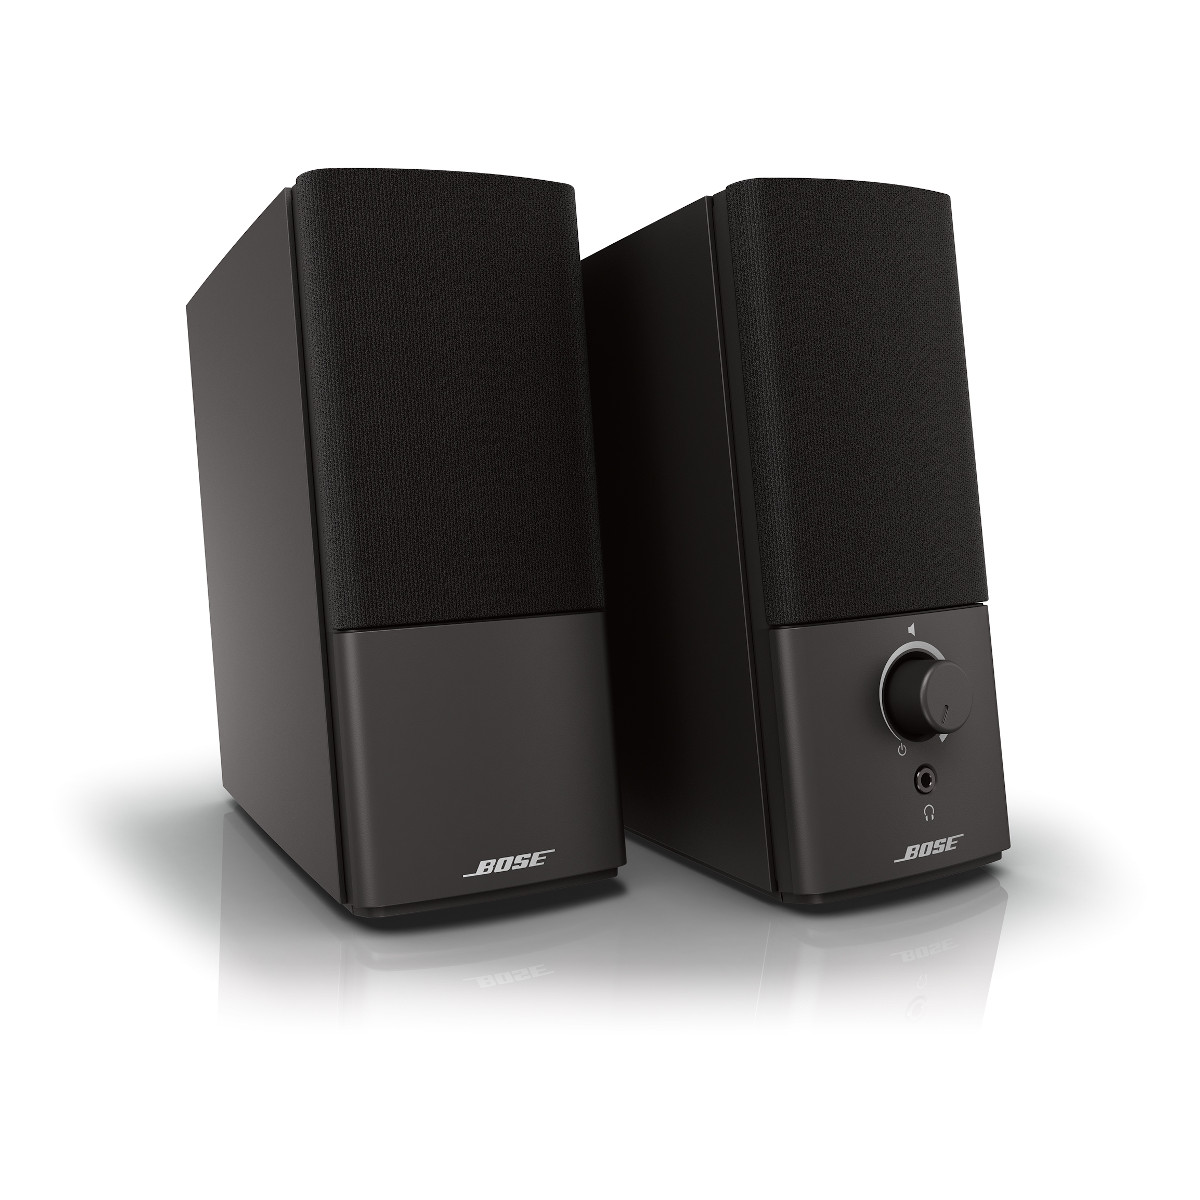 bose companion 2 series iii multimedia speaker system. Black Bedroom Furniture Sets. Home Design Ideas